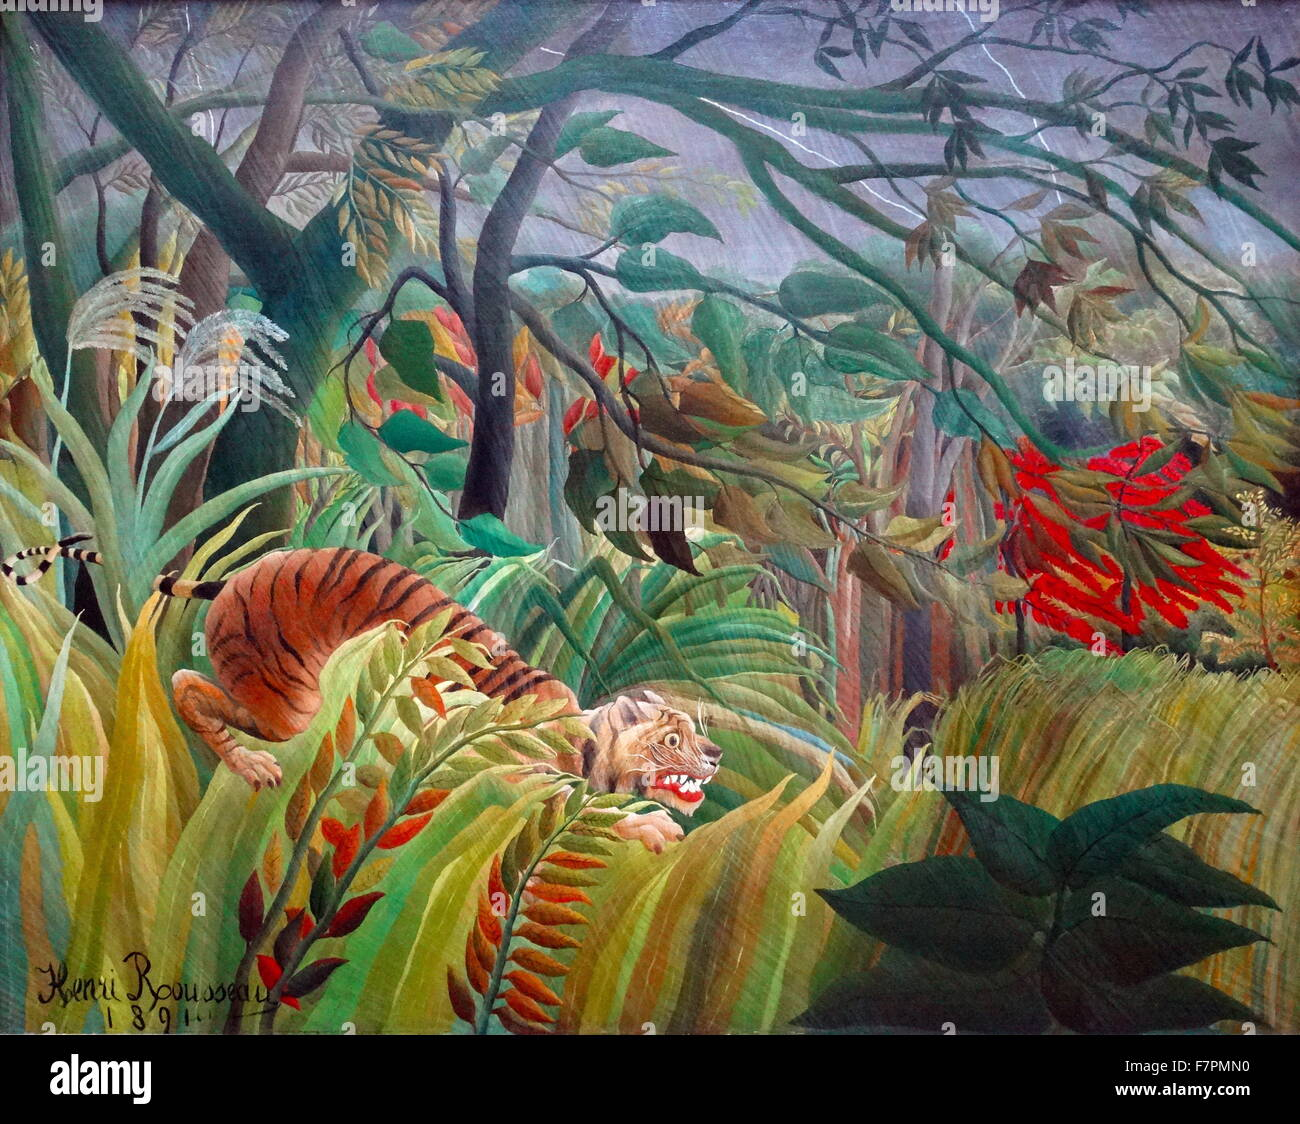 Painting titled 'Surprised!' by Henri Rousseau (1844-1910) French Post-Impressionist painter in the Naïve - Stock Image